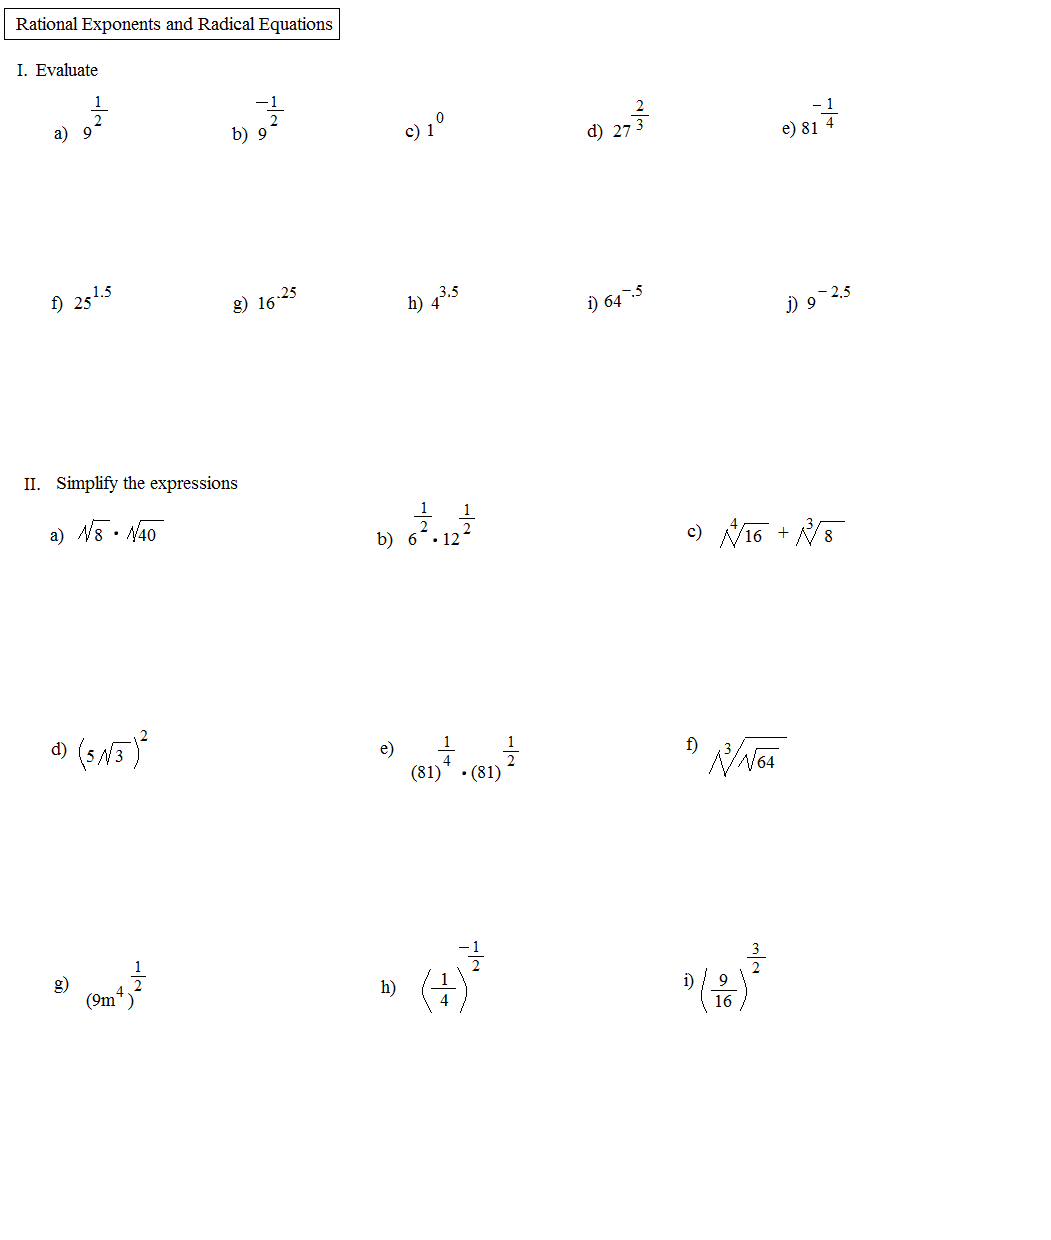 Printables Rational Exponents Worksheet fractional exponents worksheet precommunity printables worksheets math plane rational and radical equations exercise